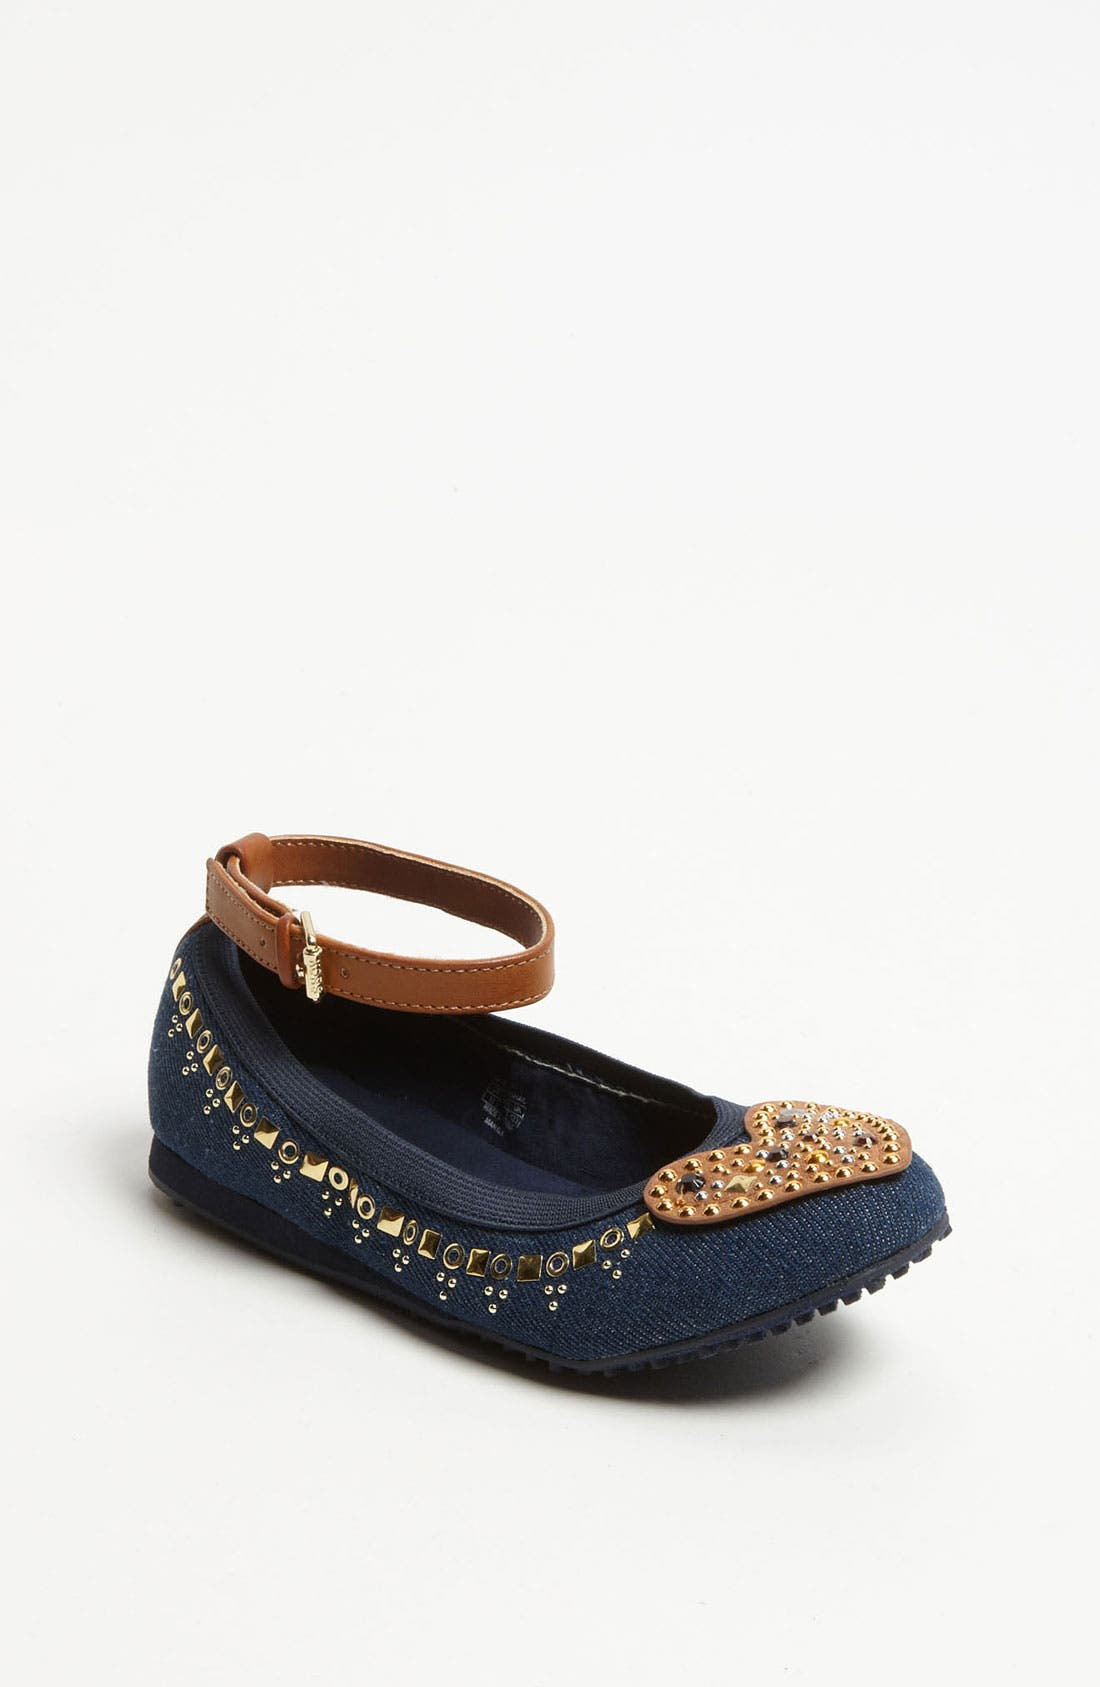 Main Image - KORS Michael Kors 'Lichen' Flat (Little Kid & Big Kid)